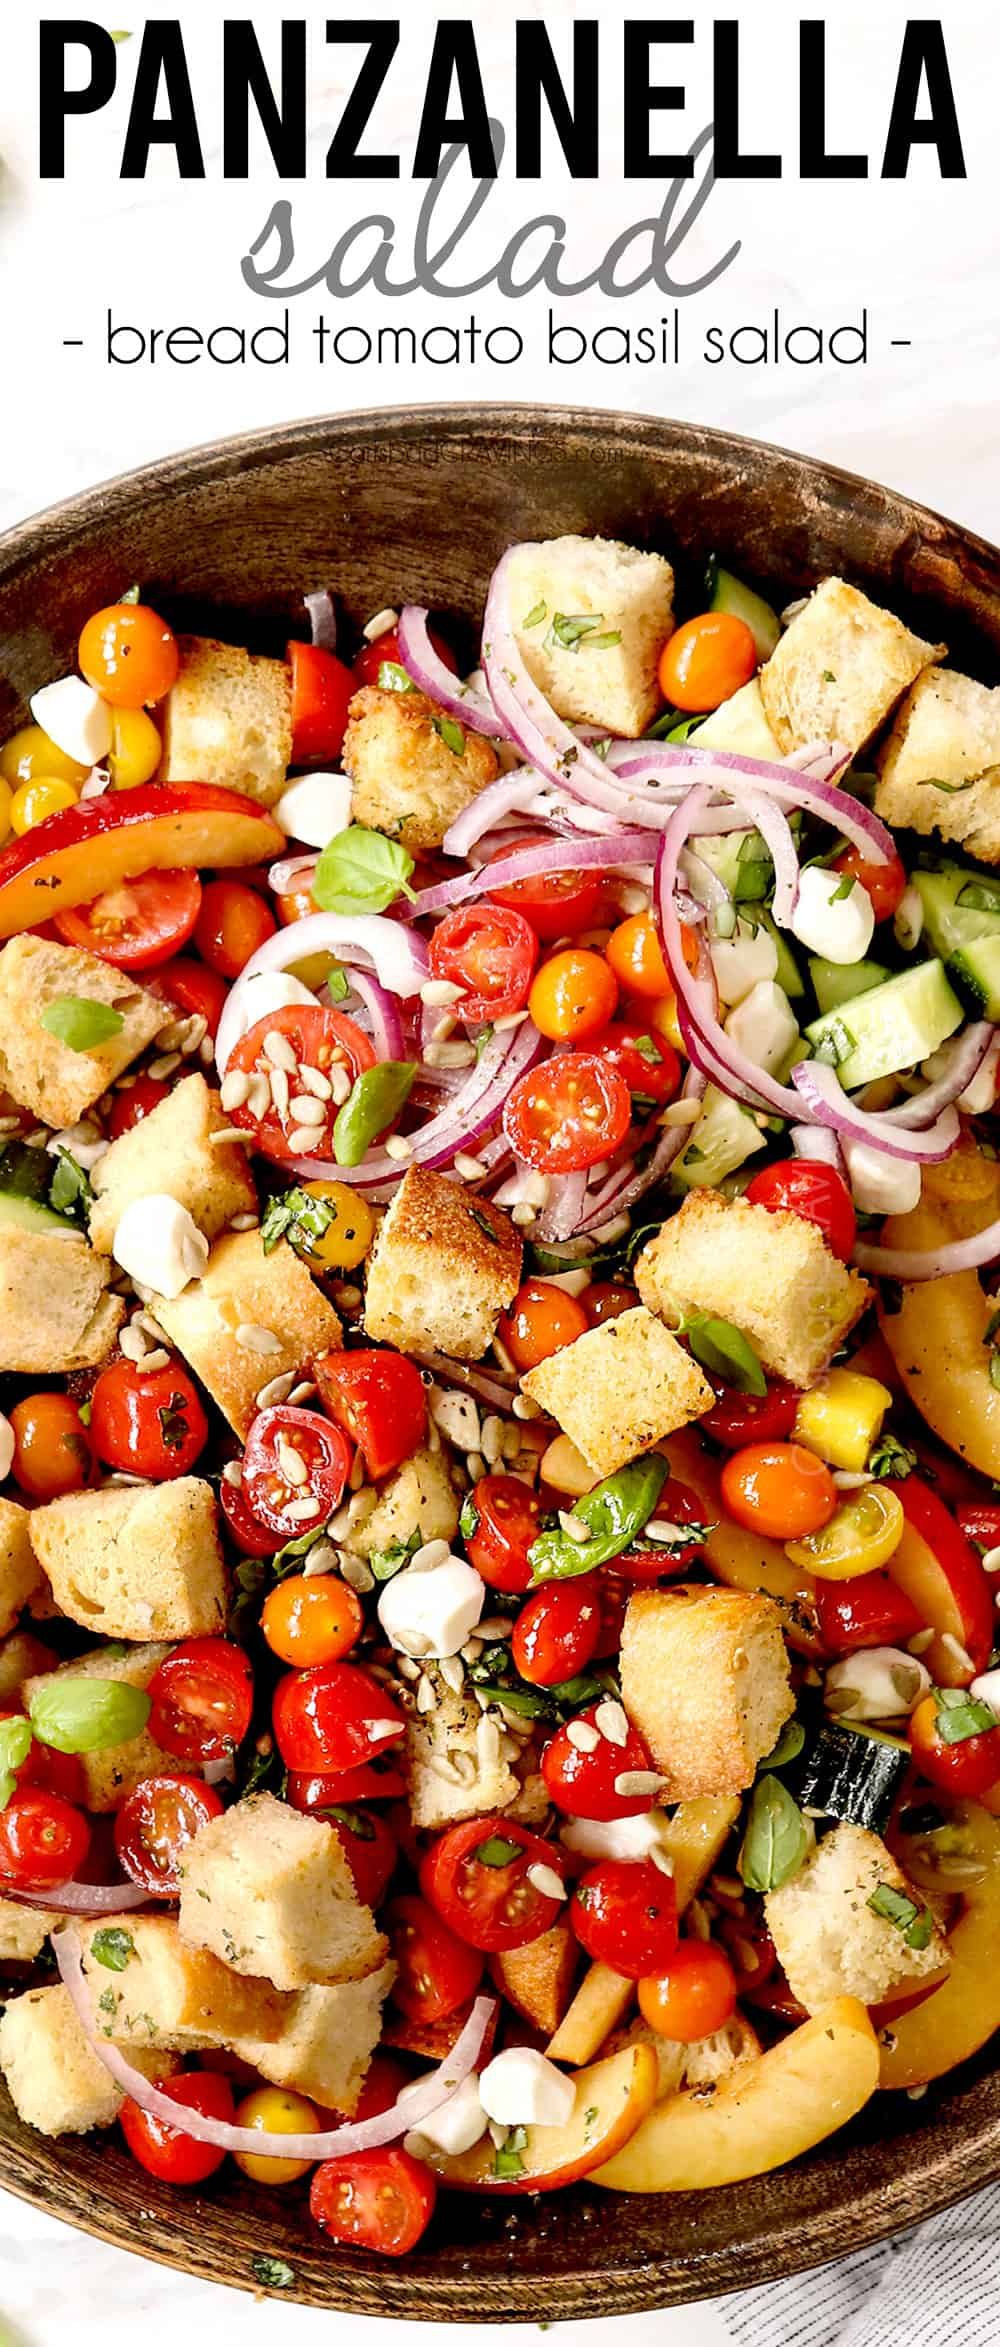 top view of panzanella in a wood serving bowl with tomatoes, red onions, cucumbers, basil, tomatoes and mozzarella